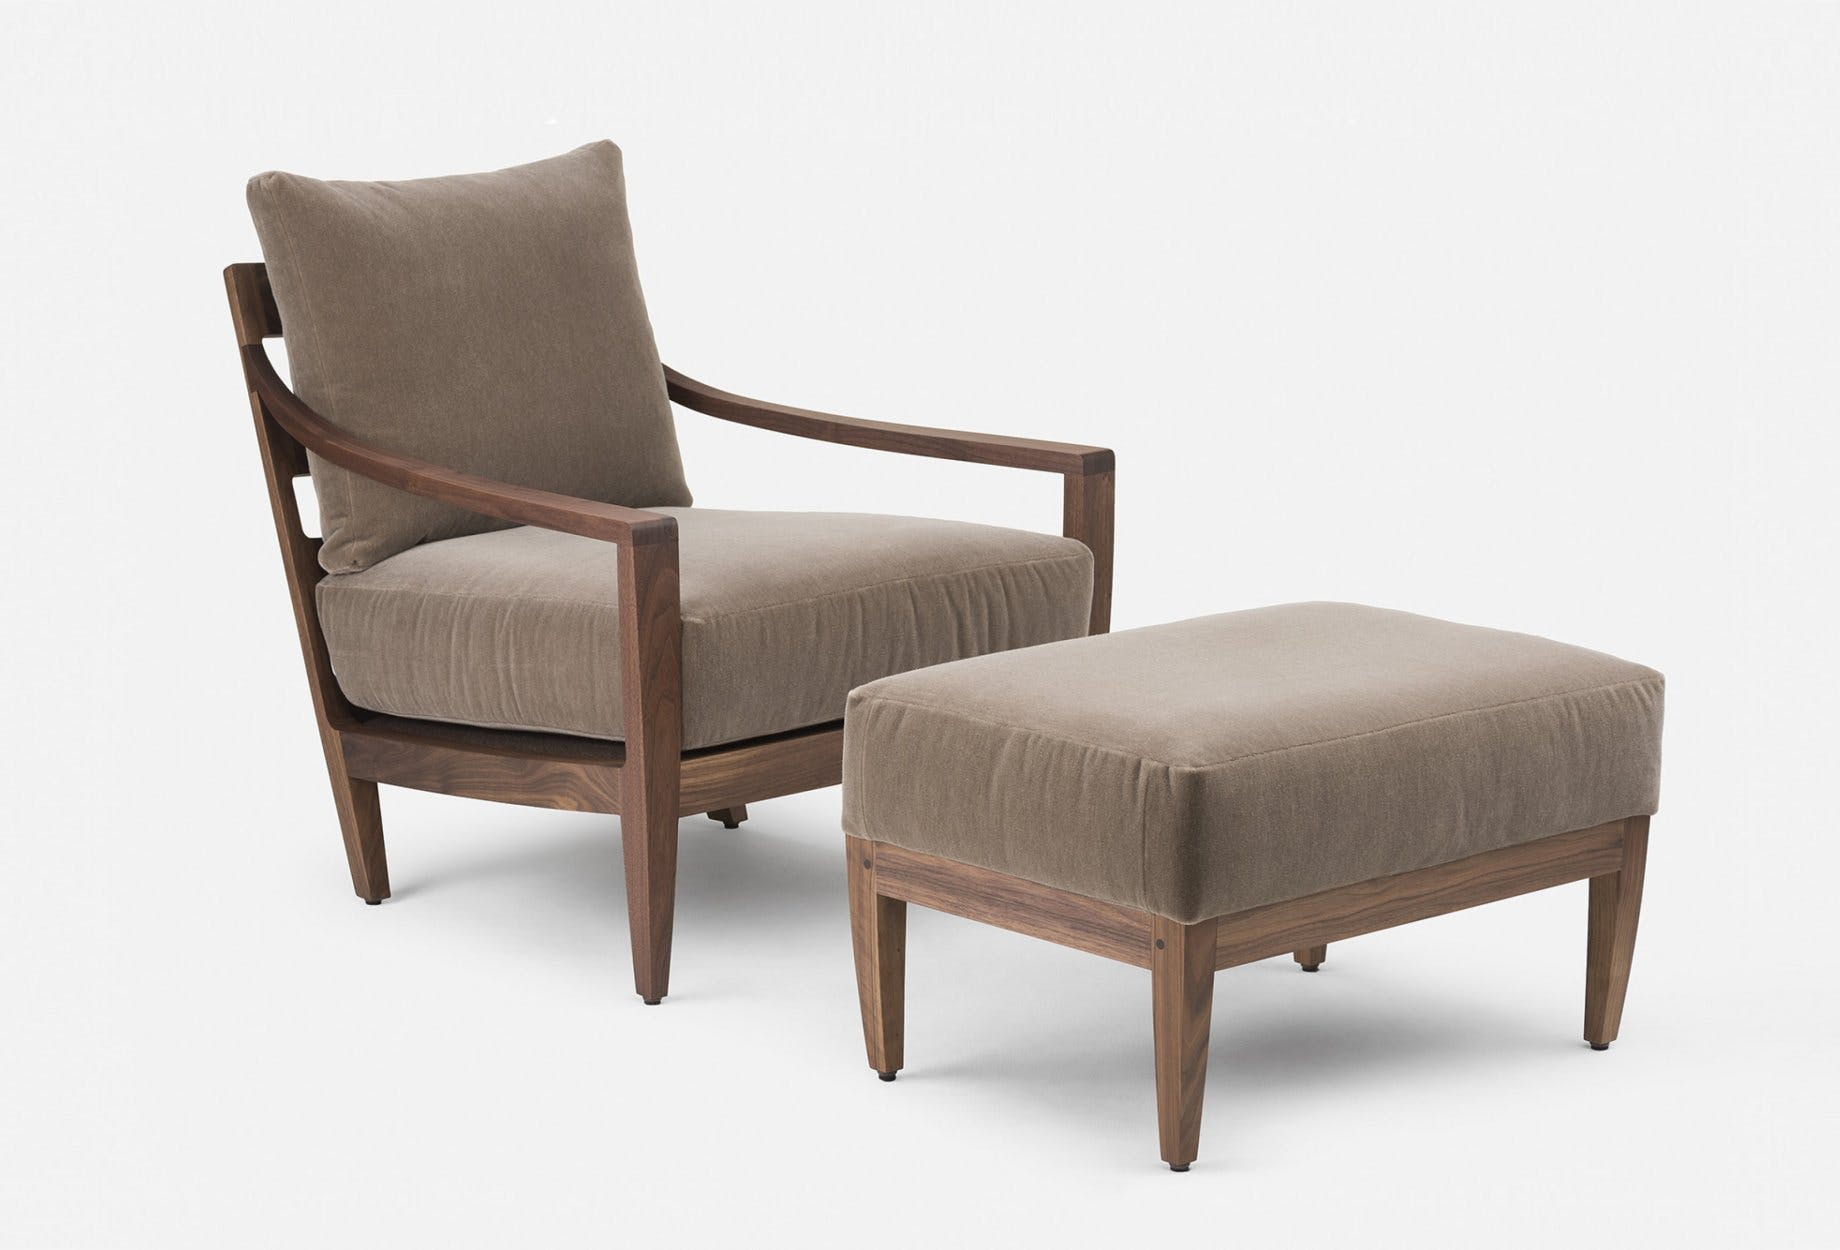 340 Low Lounge Chair And 340 O Low Ottoman By Matthew Hilton In Walnut And Velvetweb 1840X1250